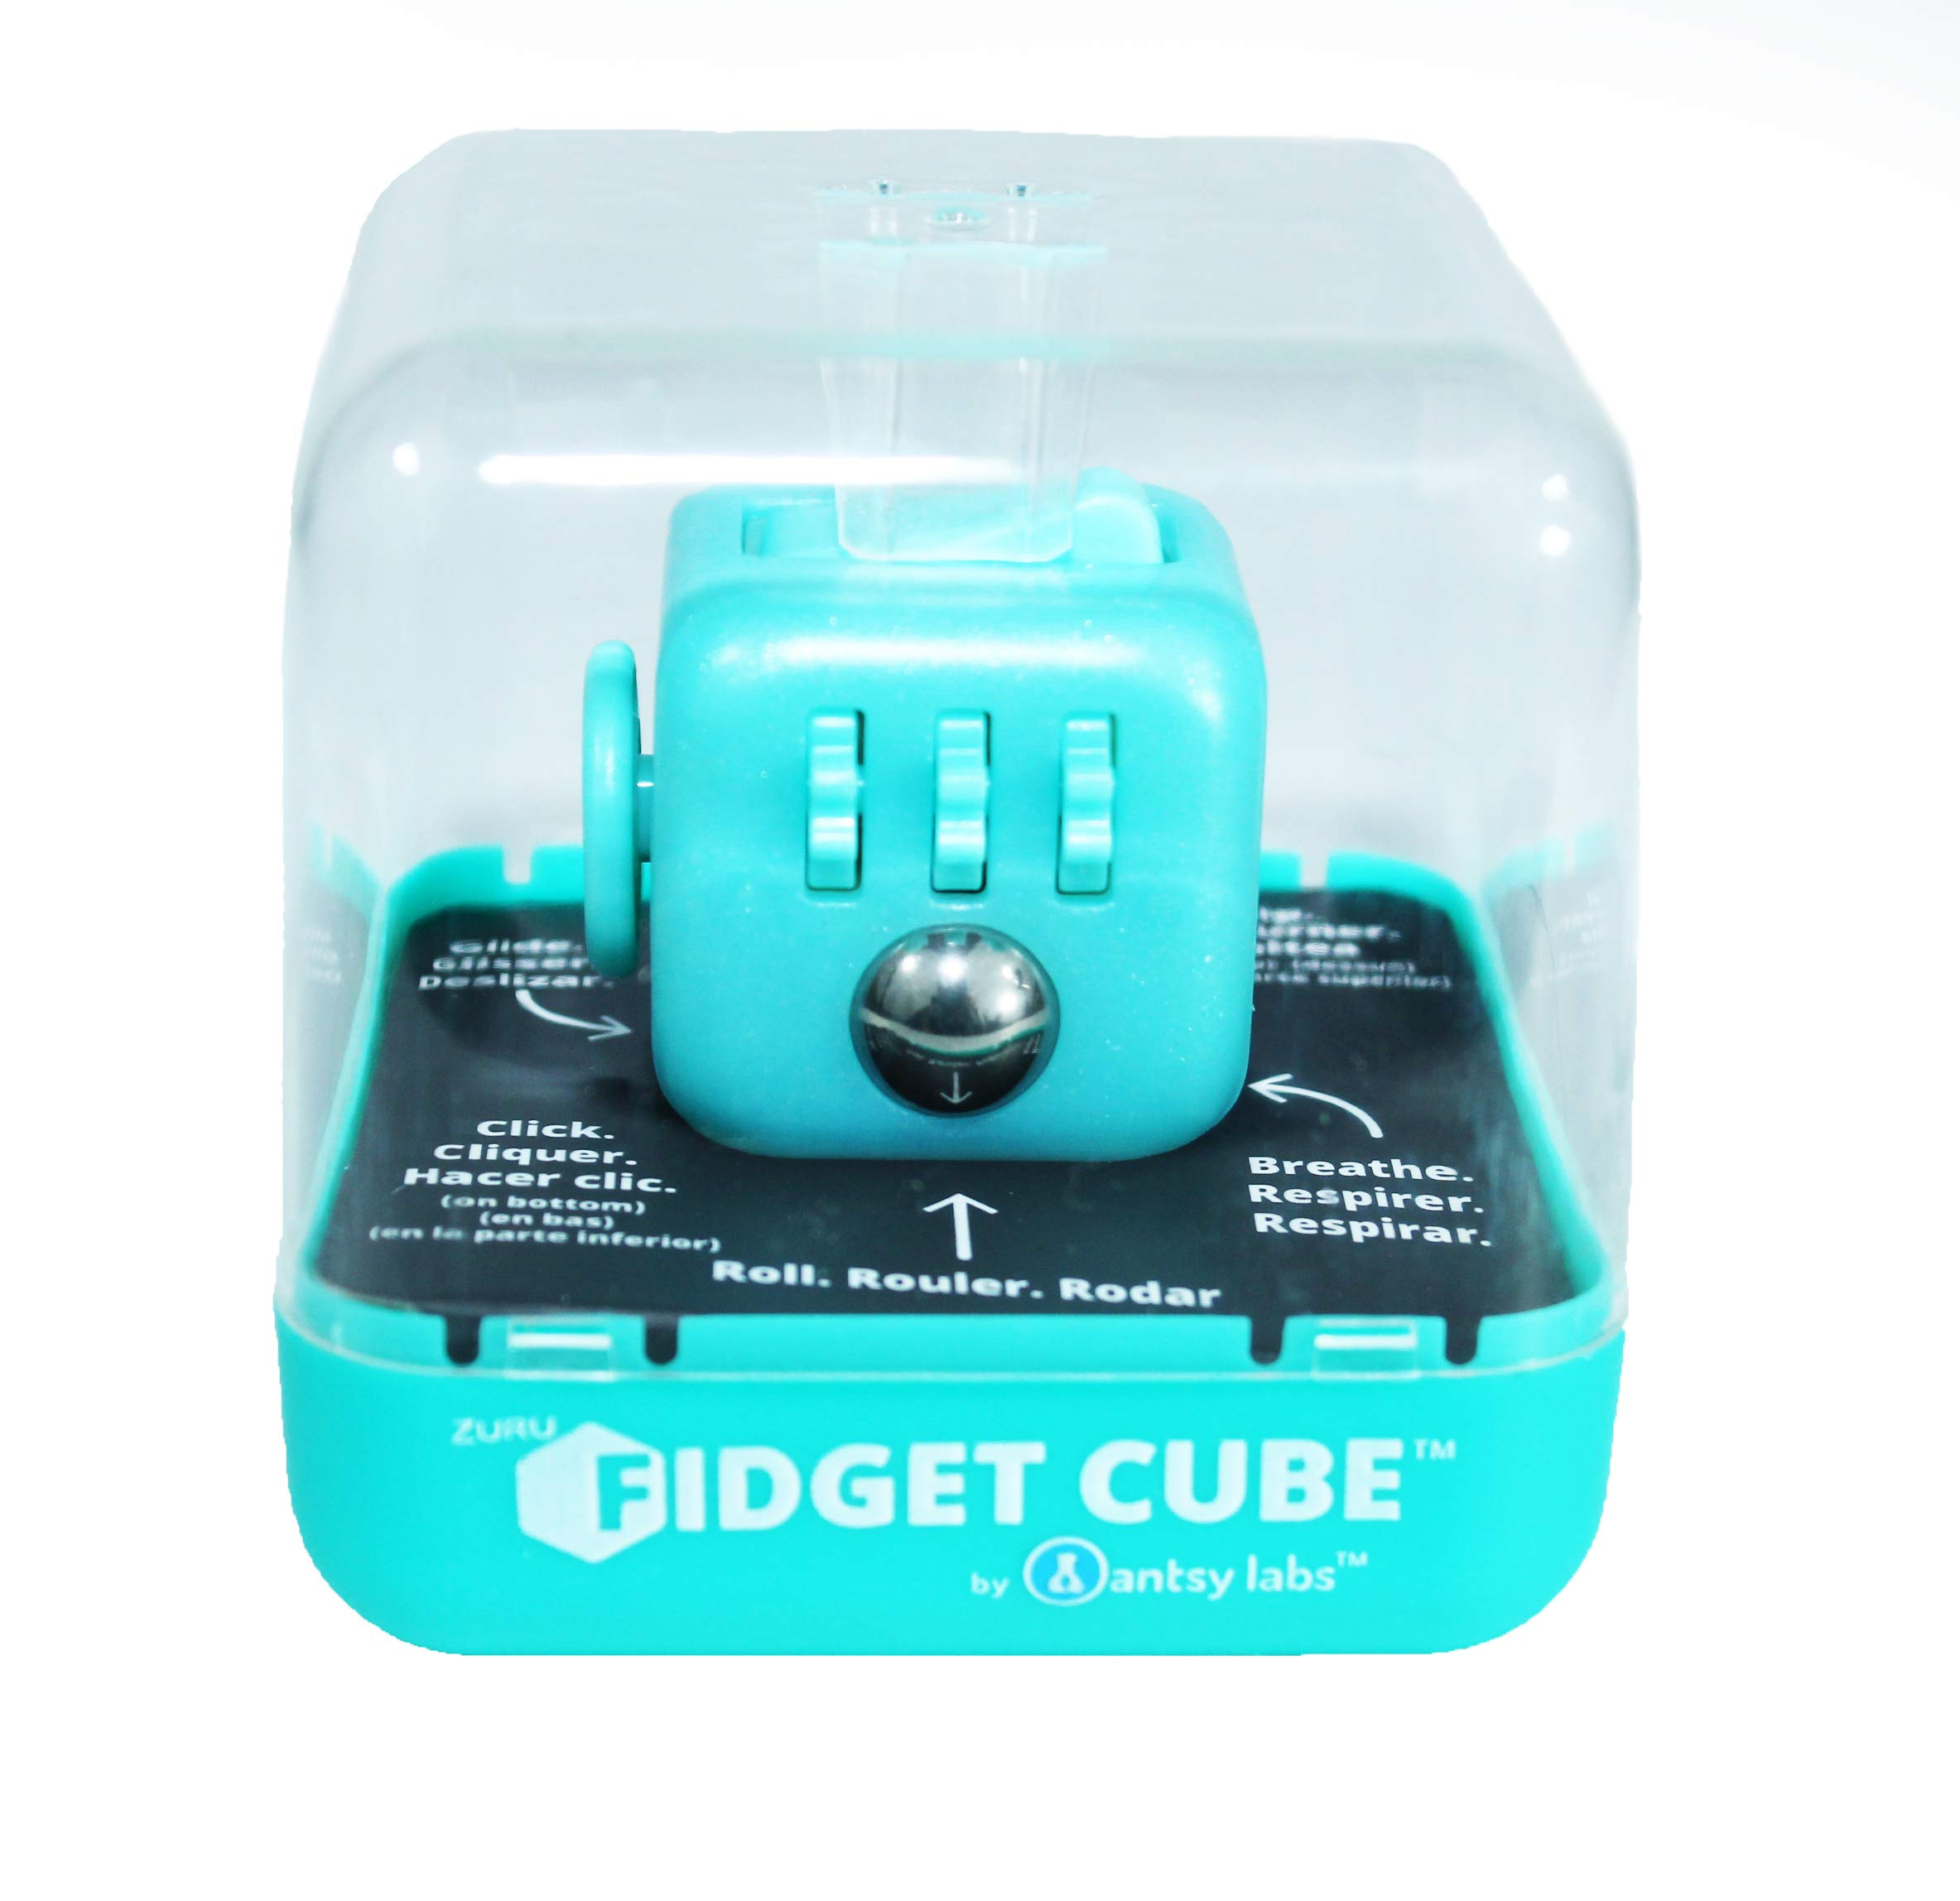 Zuru Fidget Cube by Antsy Labs - Custom Series (Glitter Tiffany Blue) Teal Glitter Fidget Cube with Teal Blue Accents